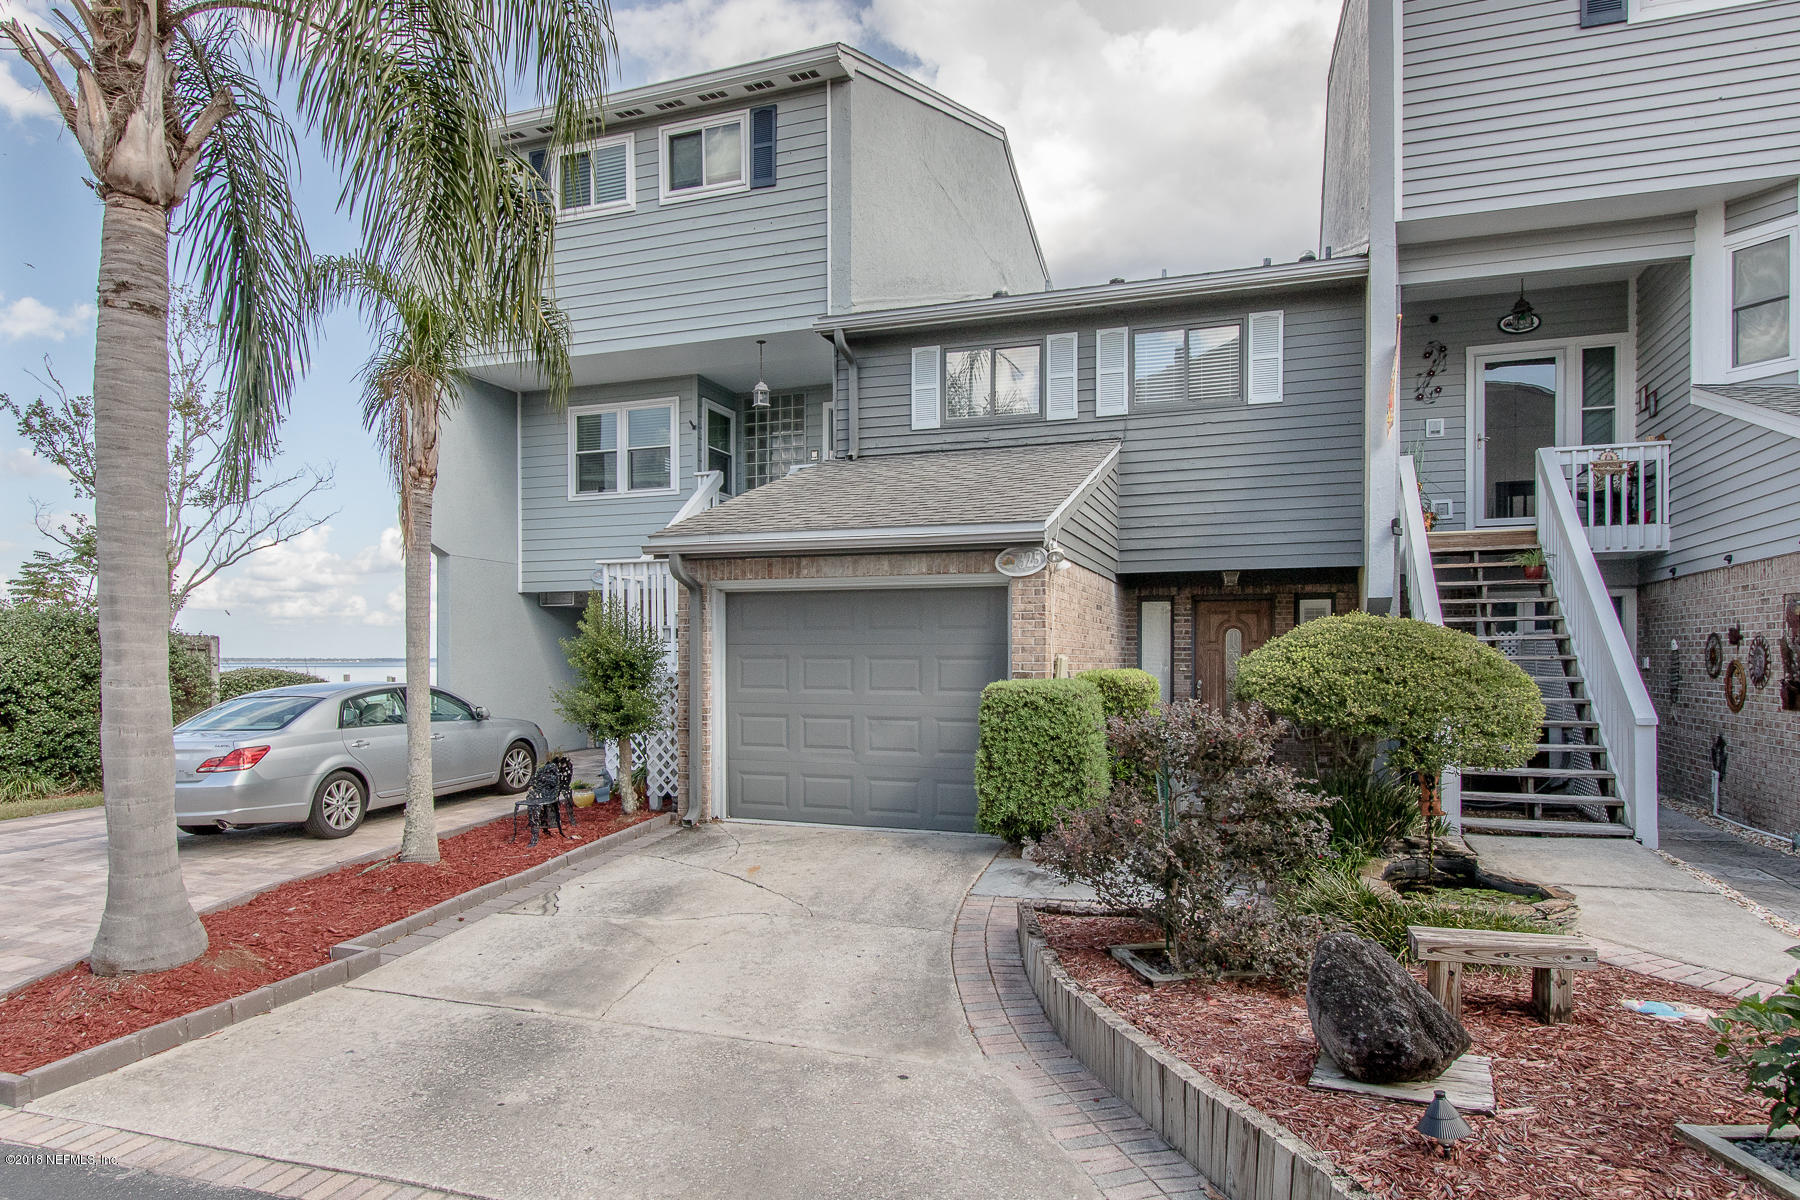 325 SCENIC POINT, FLEMING ISLAND, FLORIDA 32003, 2 Bedrooms Bedrooms, ,2 BathroomsBathrooms,Residential - townhome,For sale,SCENIC POINT,964588